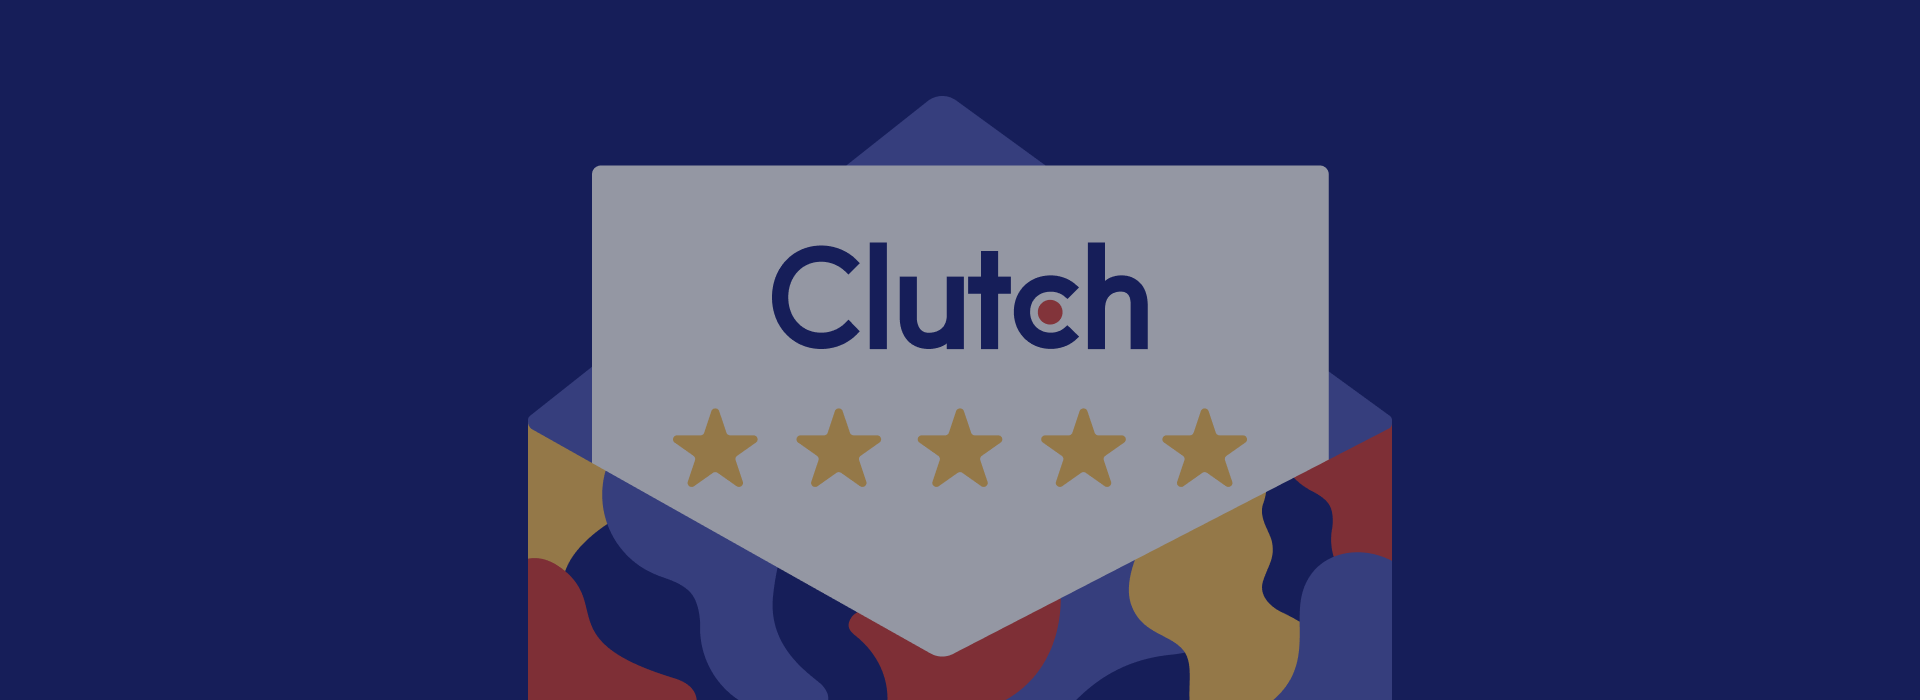 ADCI Solutions was featured in the Clutch press release